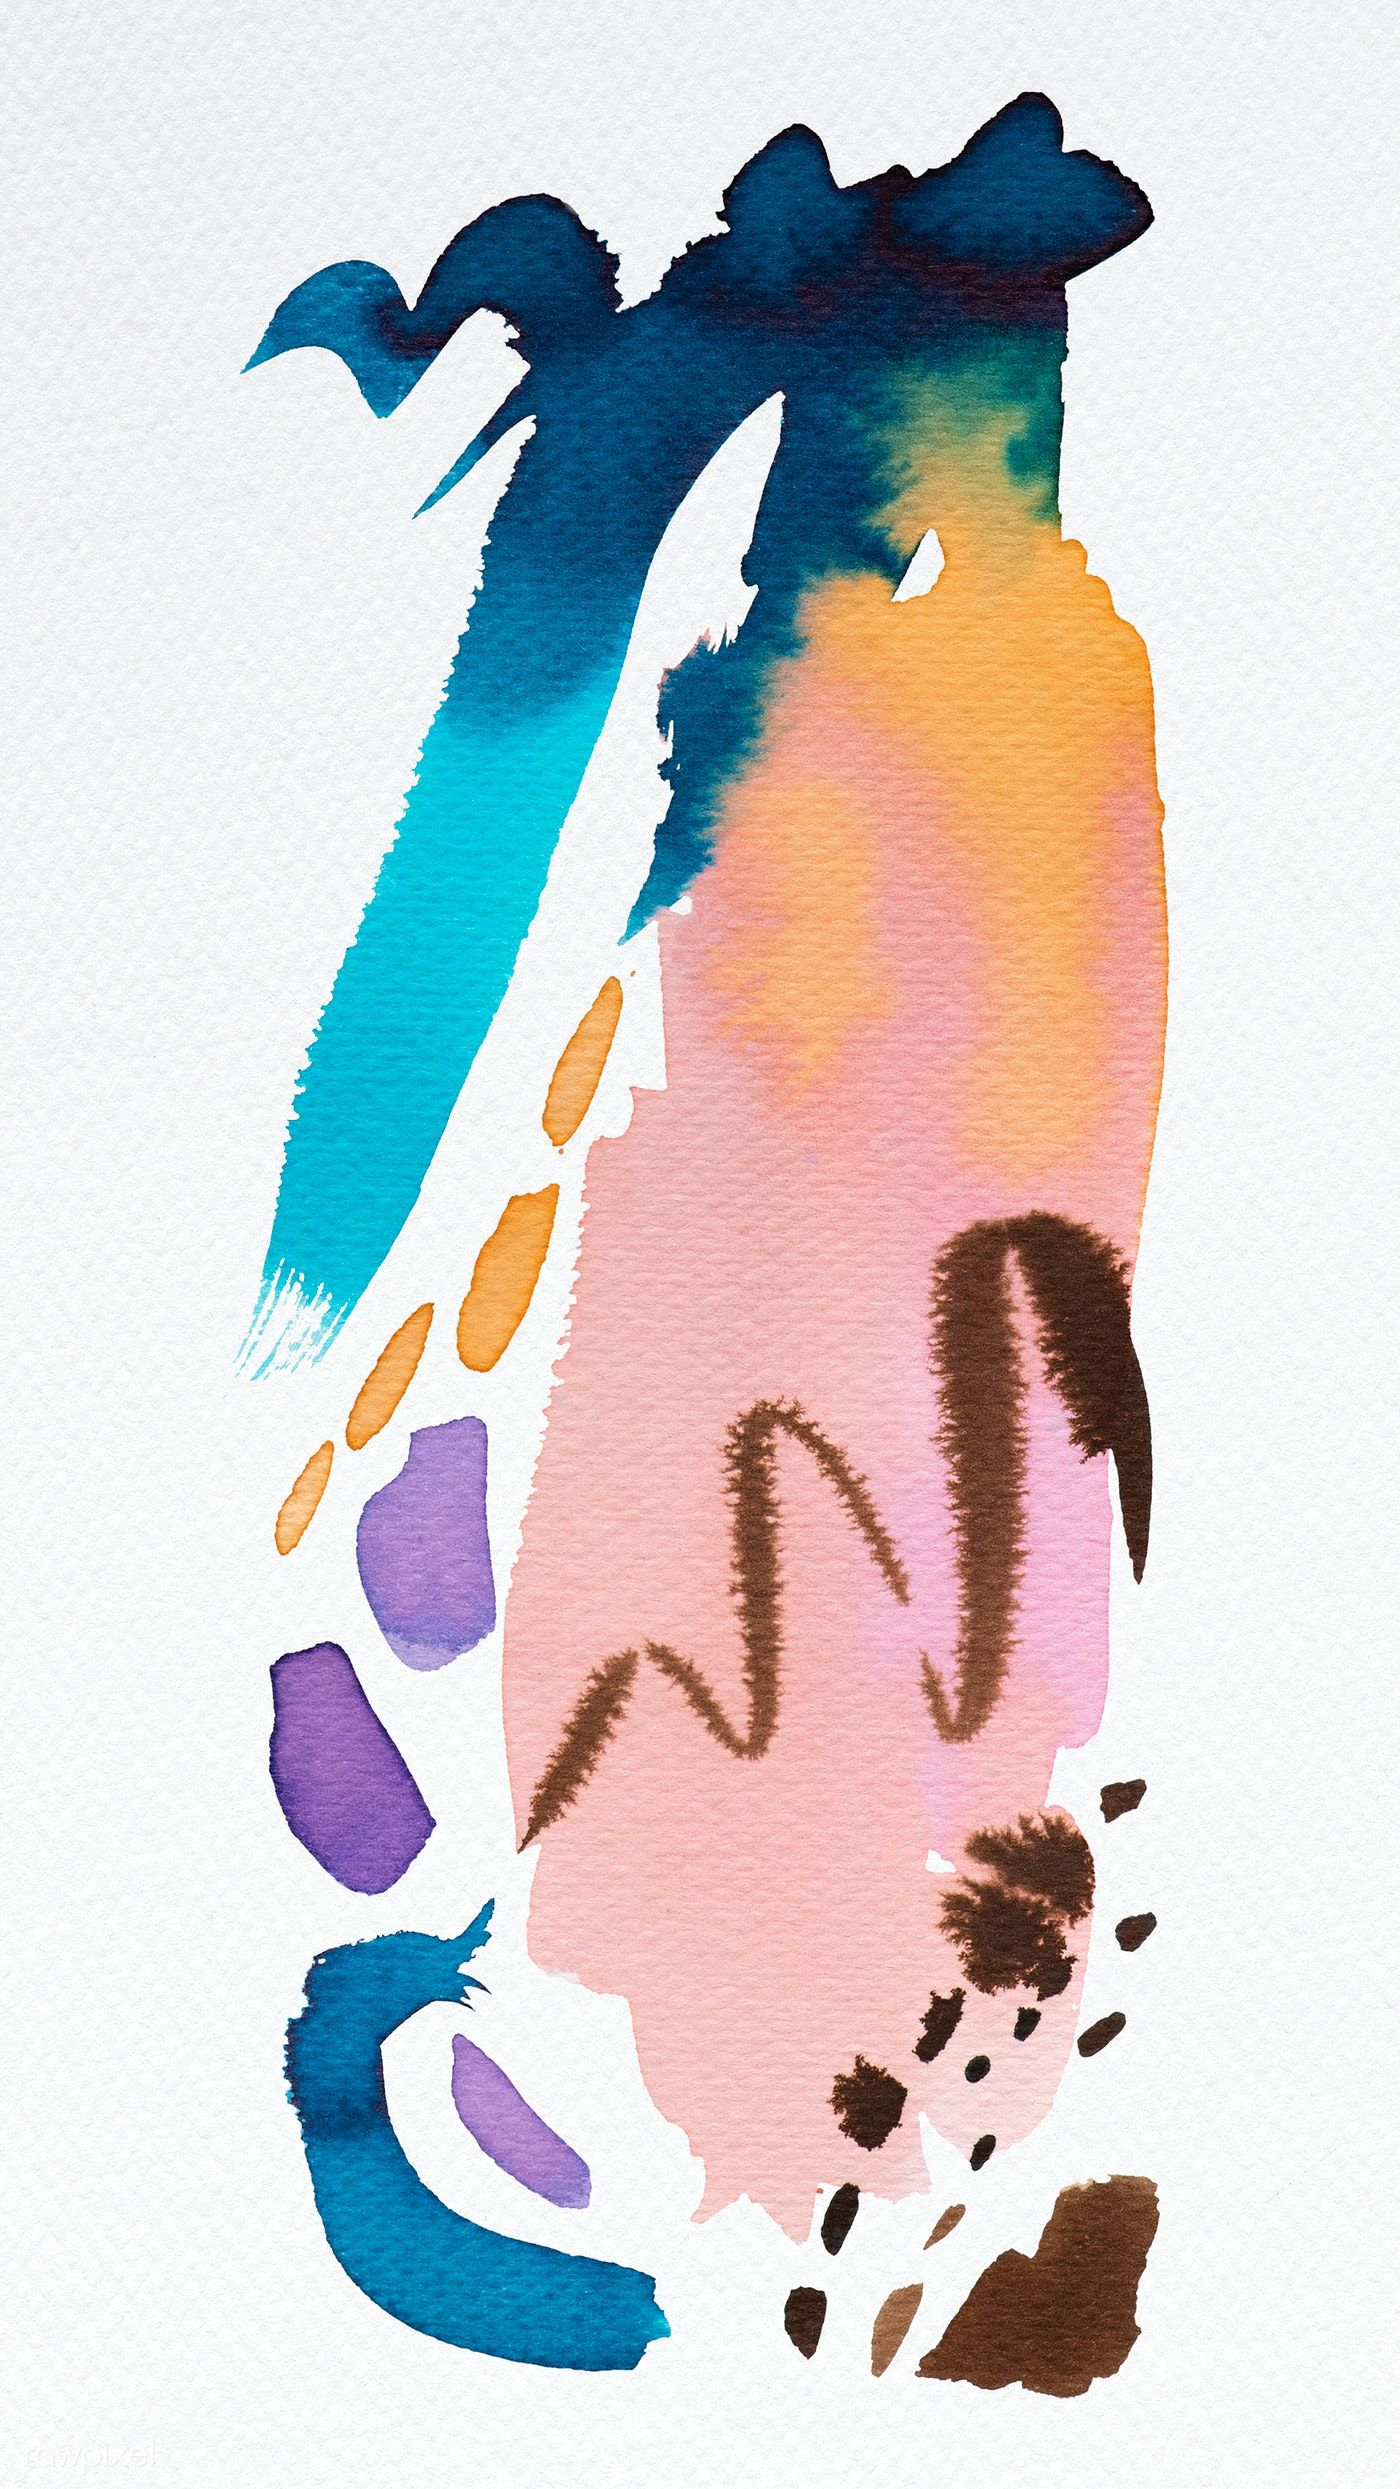 Mixed Watercolor Brush Paint Phone Background Free Image By